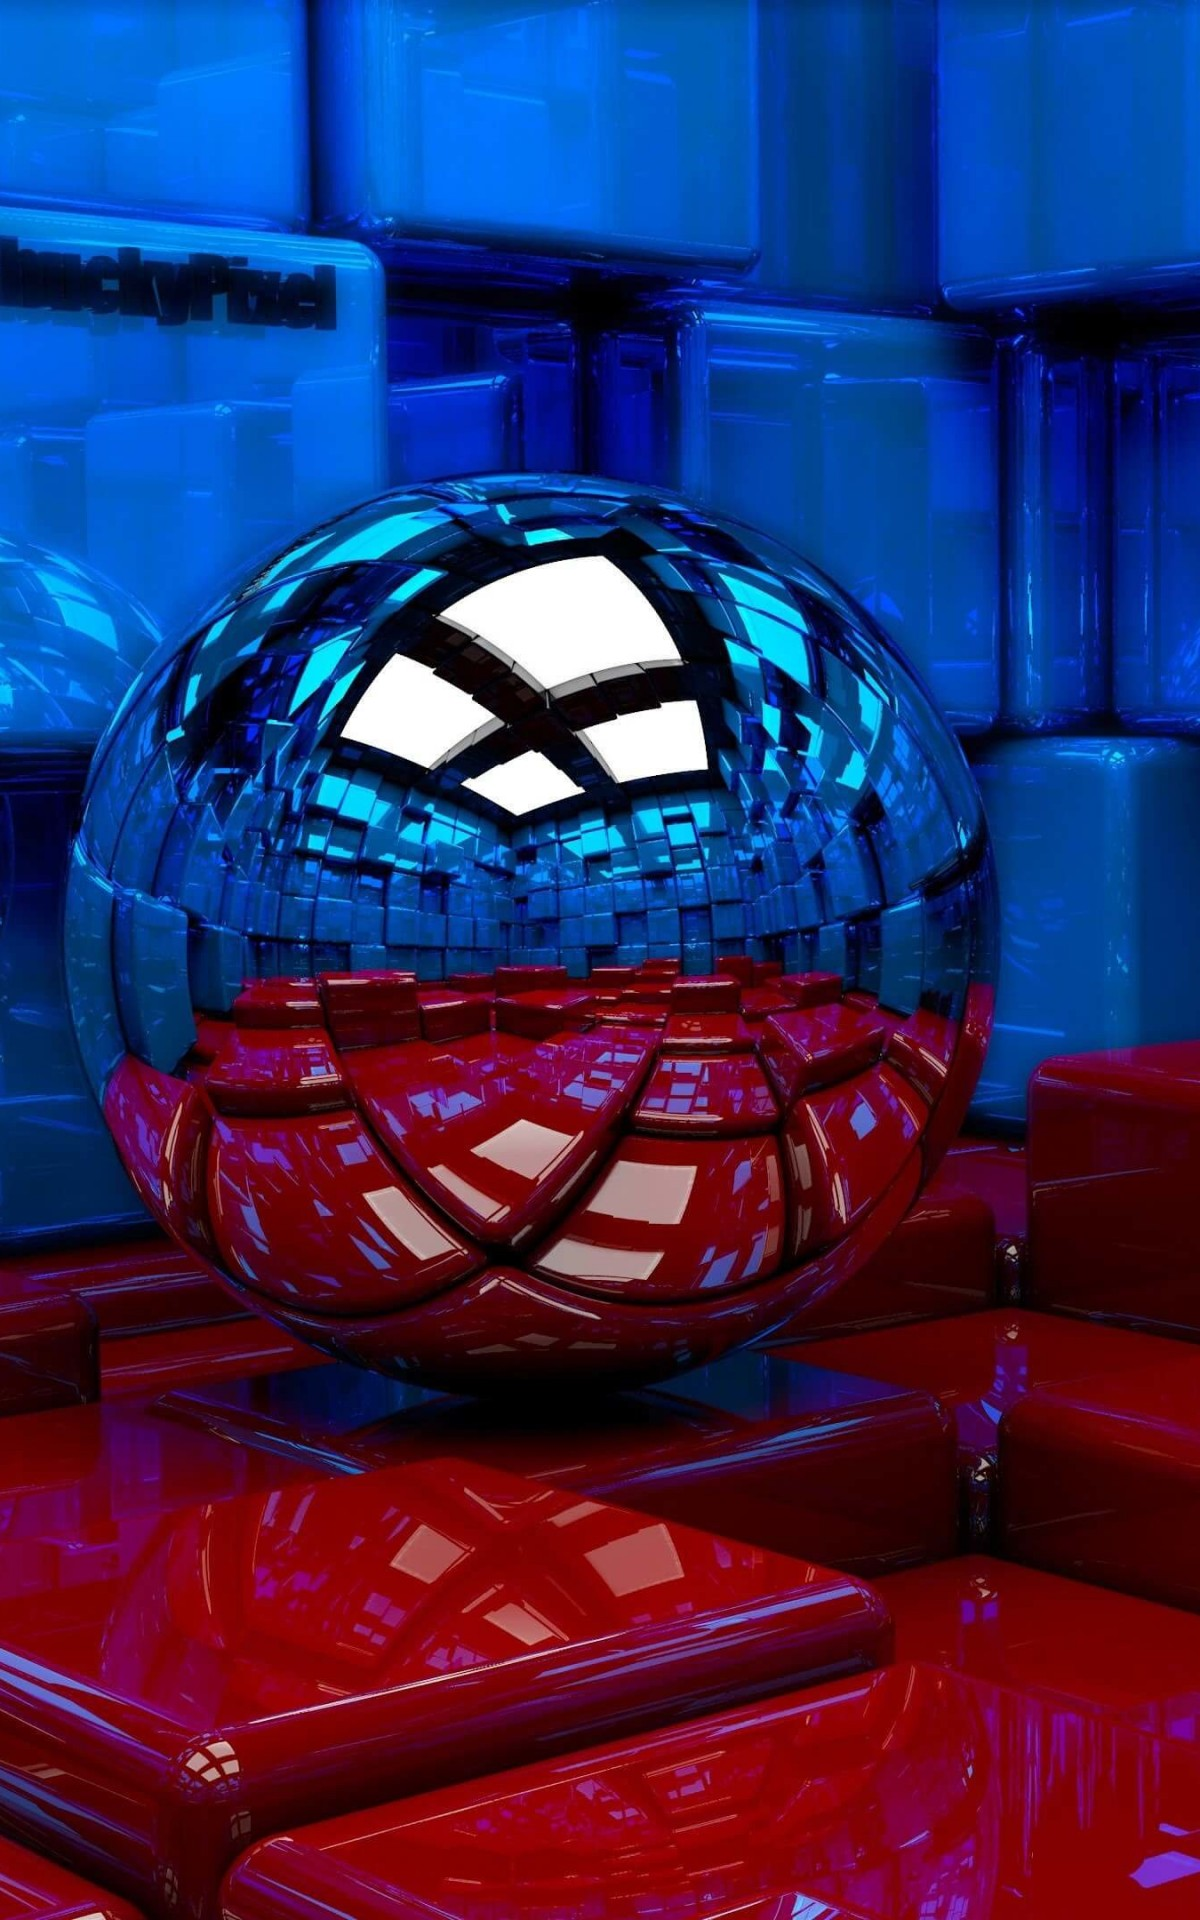 Metallic Sphere Reflecting The Cube Room Wallpaper for Amazon Kindle Fire HDX